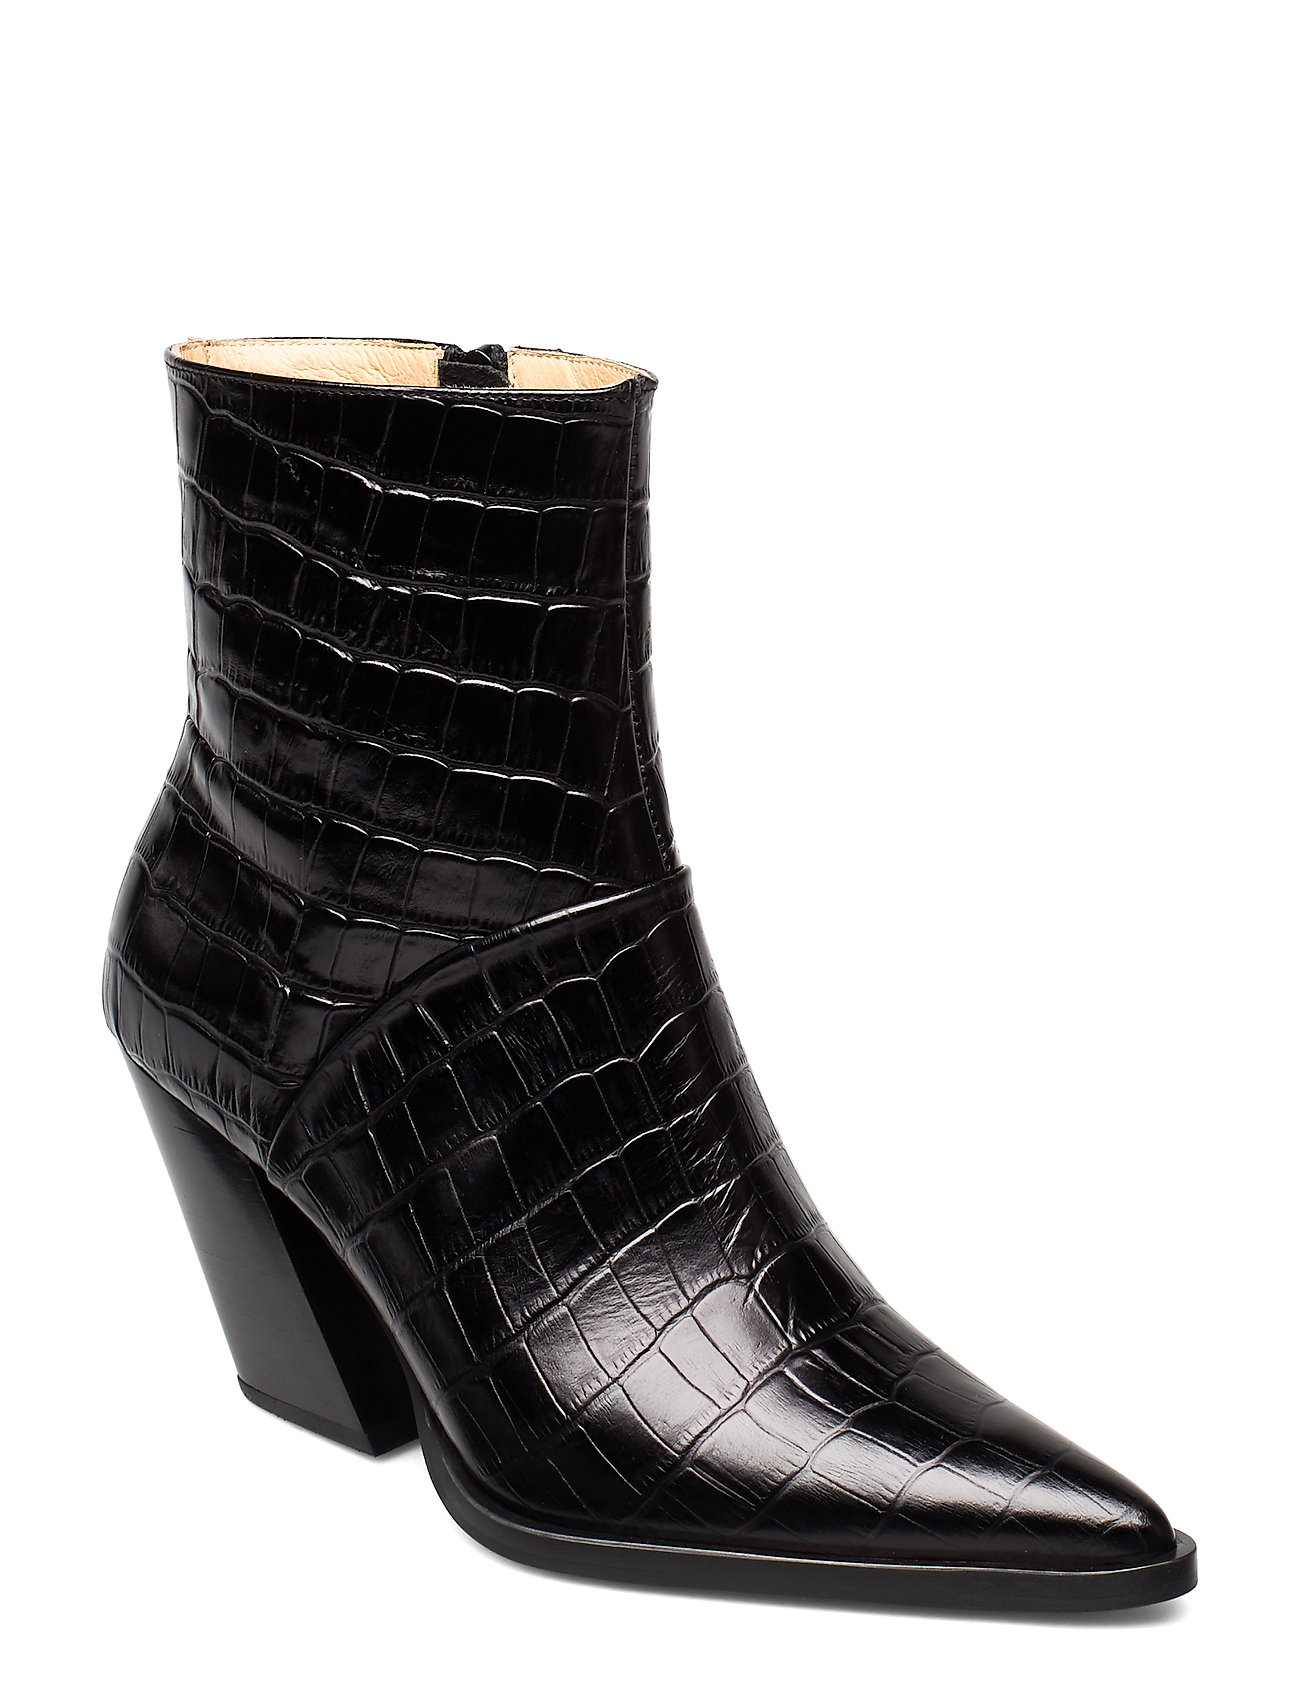 Image of Escape From The West Ankle Boot Shoes Boots Ankle Boots Ankle Boots With Heel Sort ANNY NORD (3247206823)